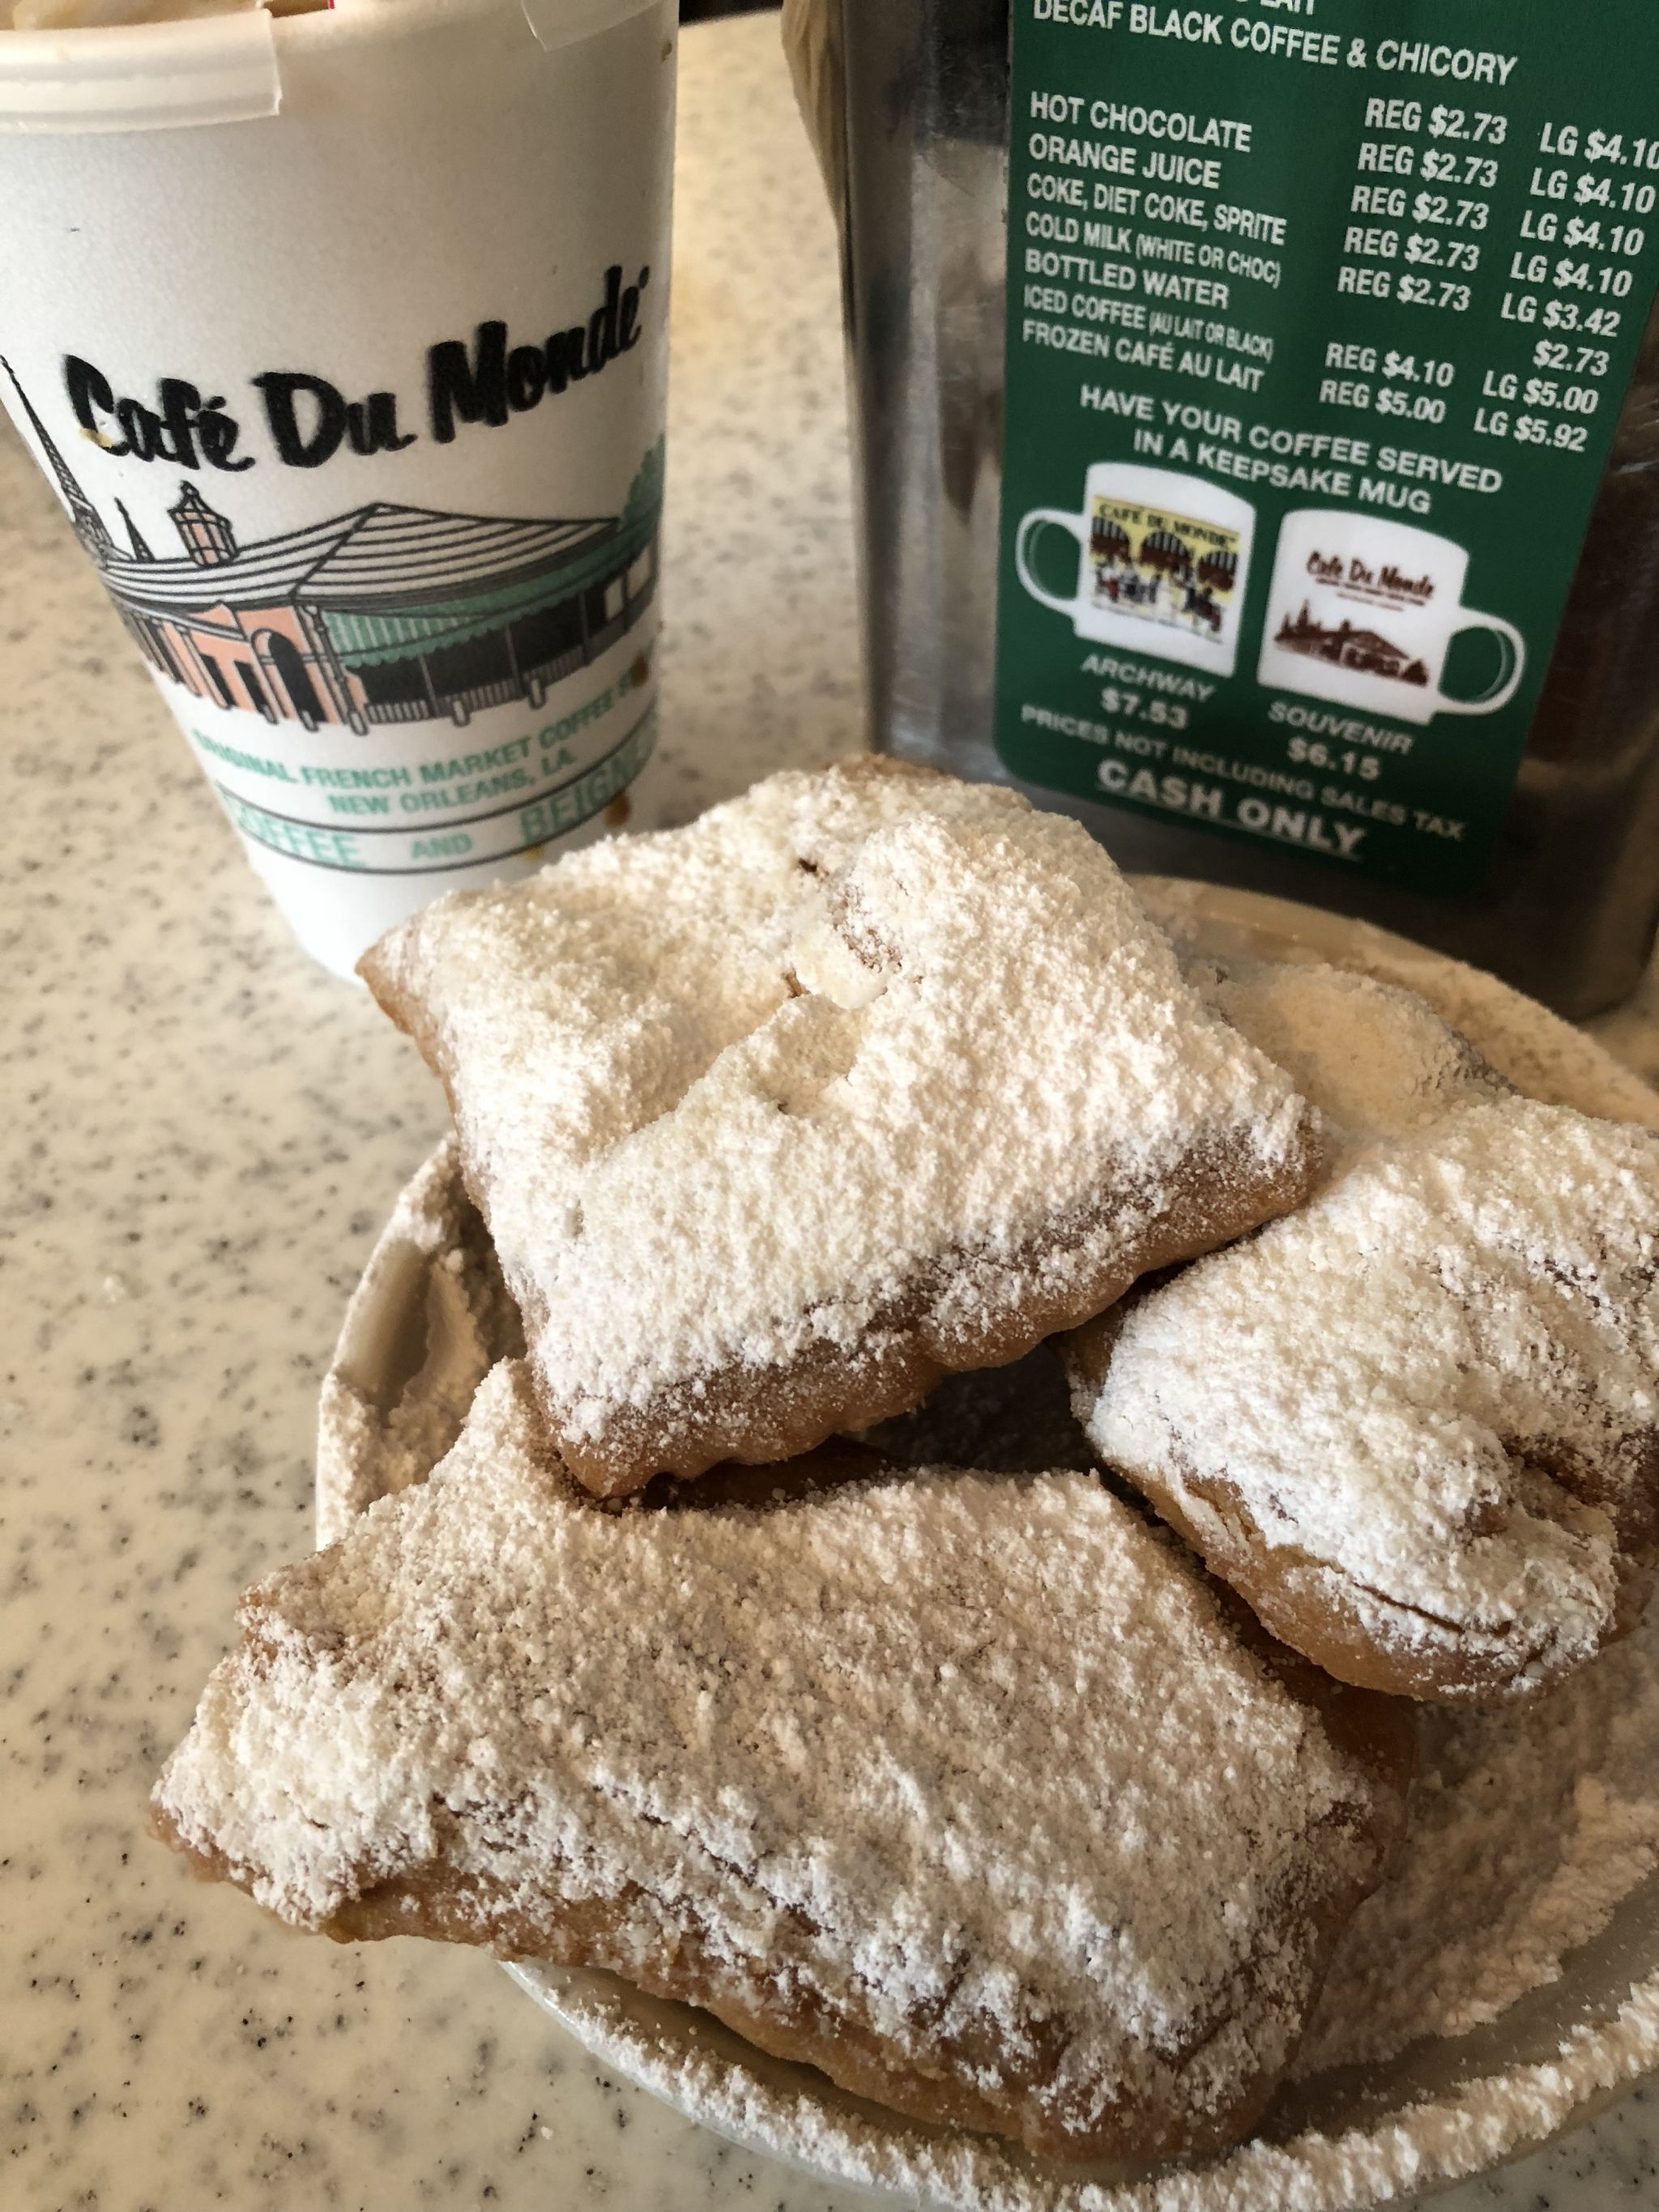 Iconic foods of New Orleans